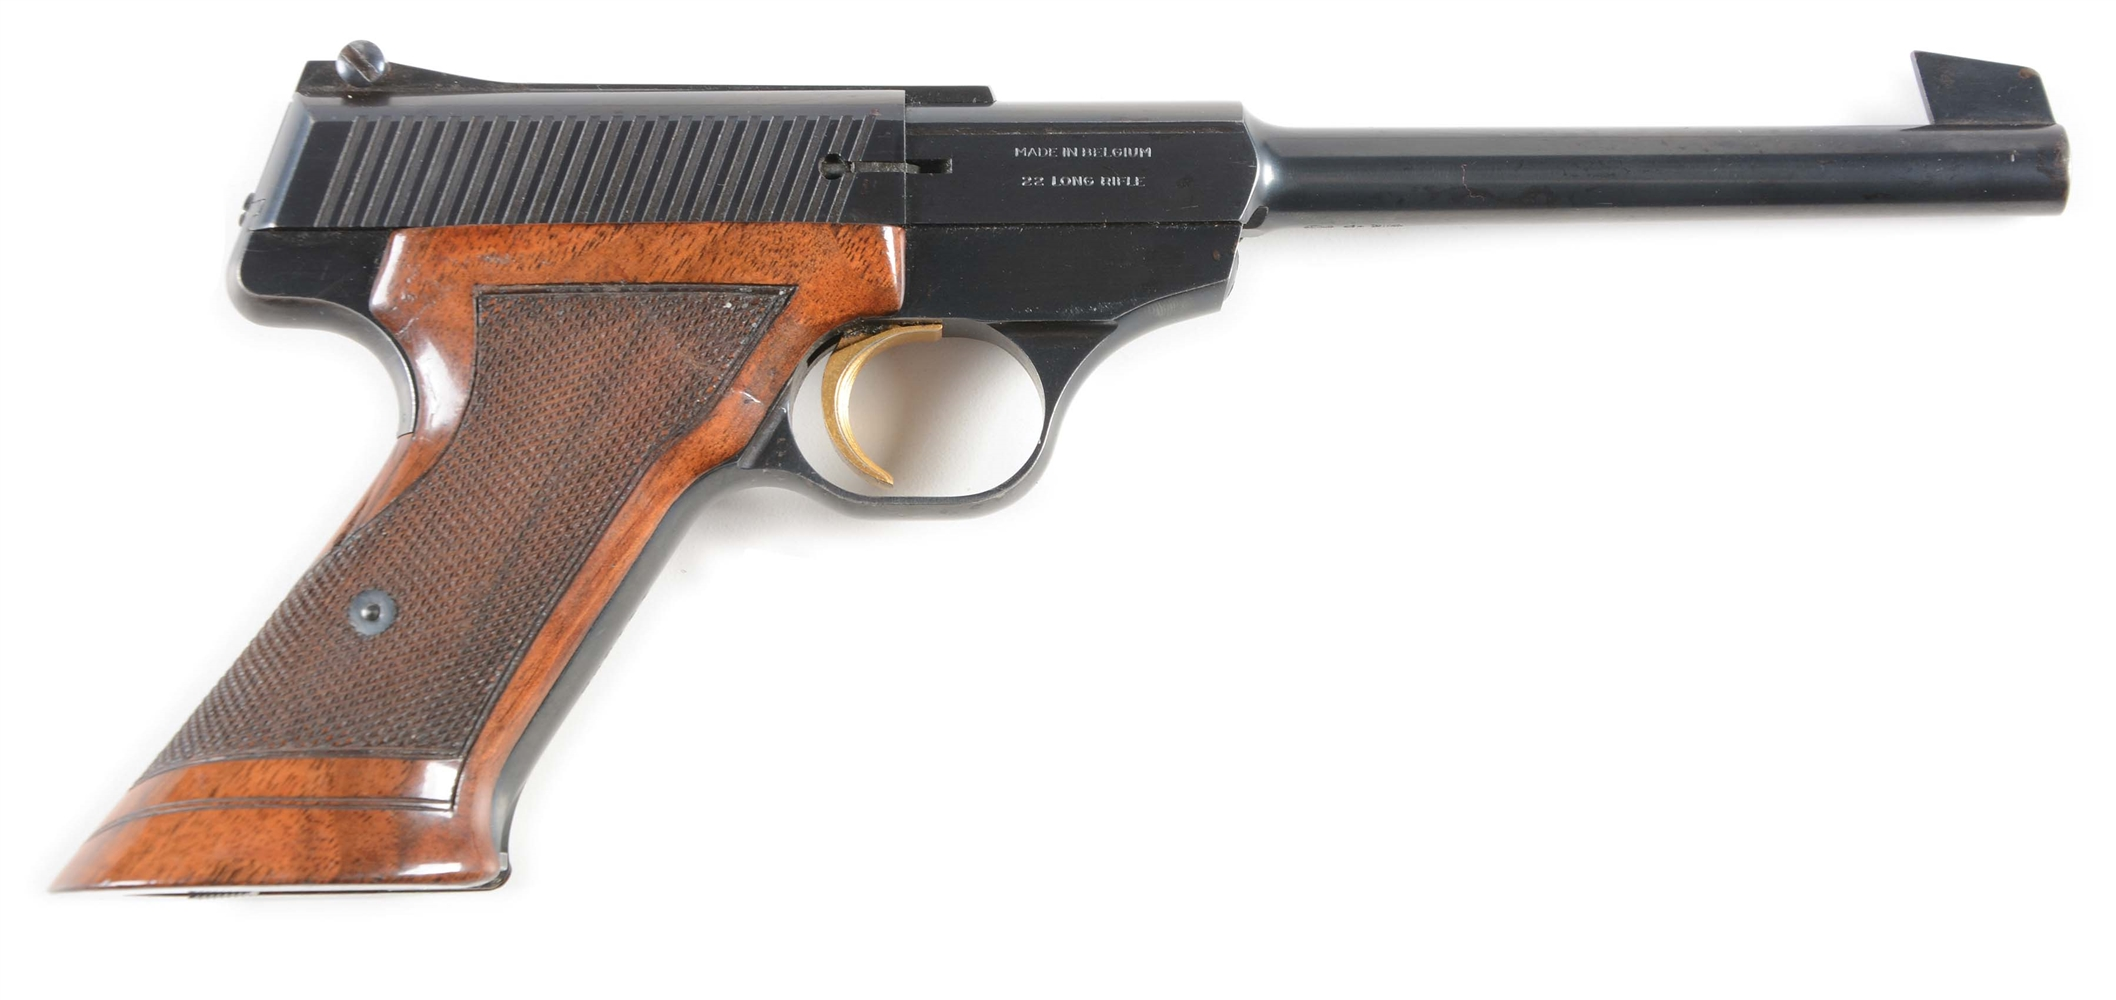 (C) Browning Challenger Semi-Automatic Pistol.